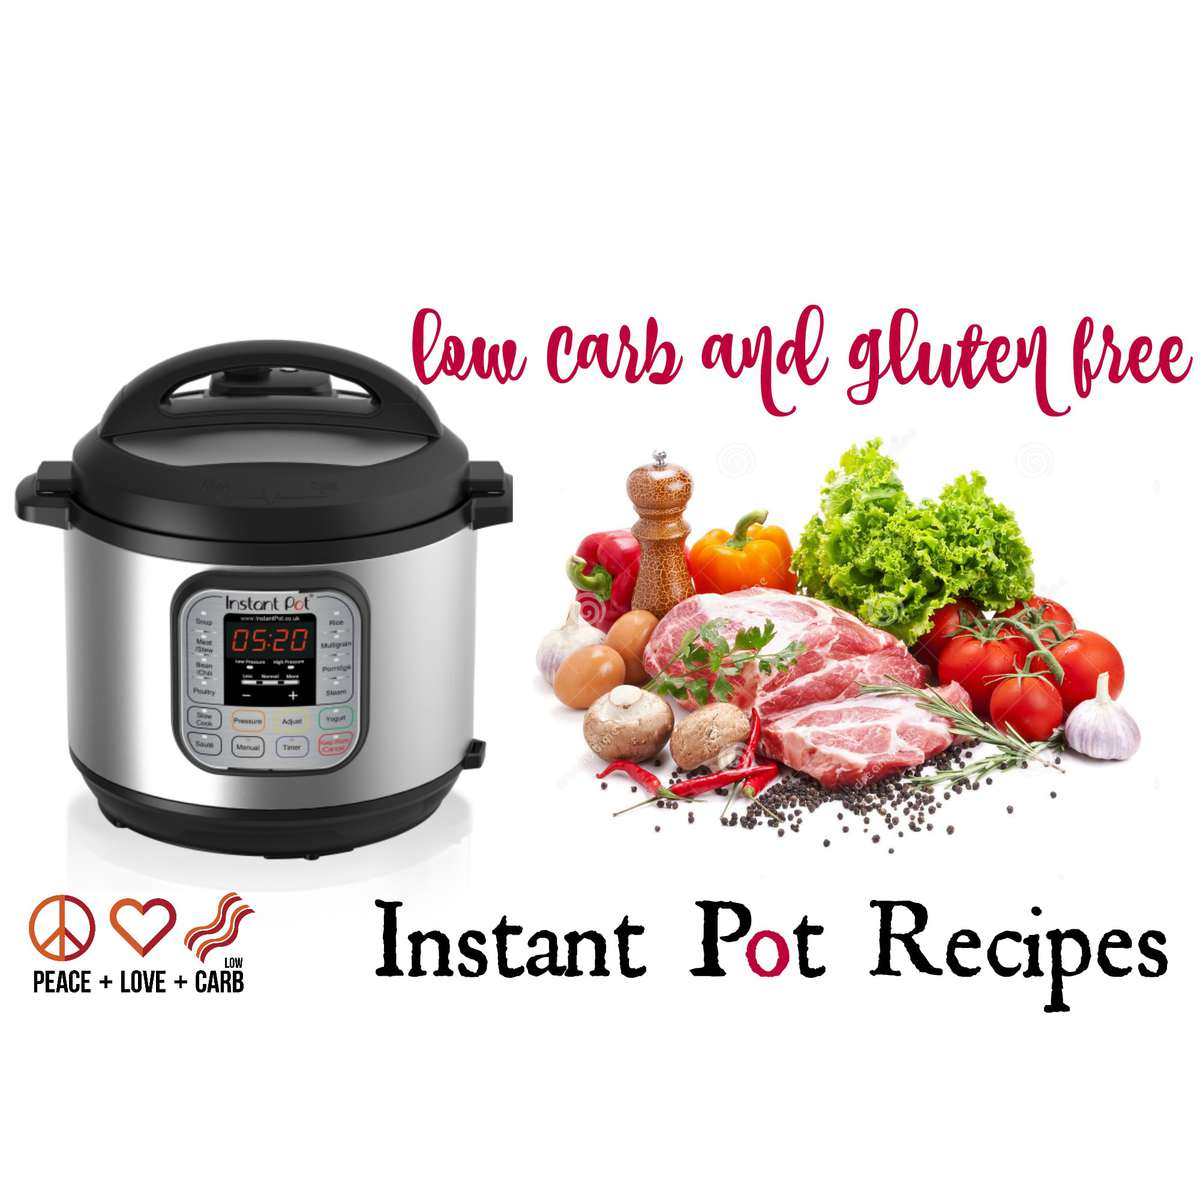 20 Low Carb and Gluten Free  Instant Pot Recipes | Peace Love and Low Carb